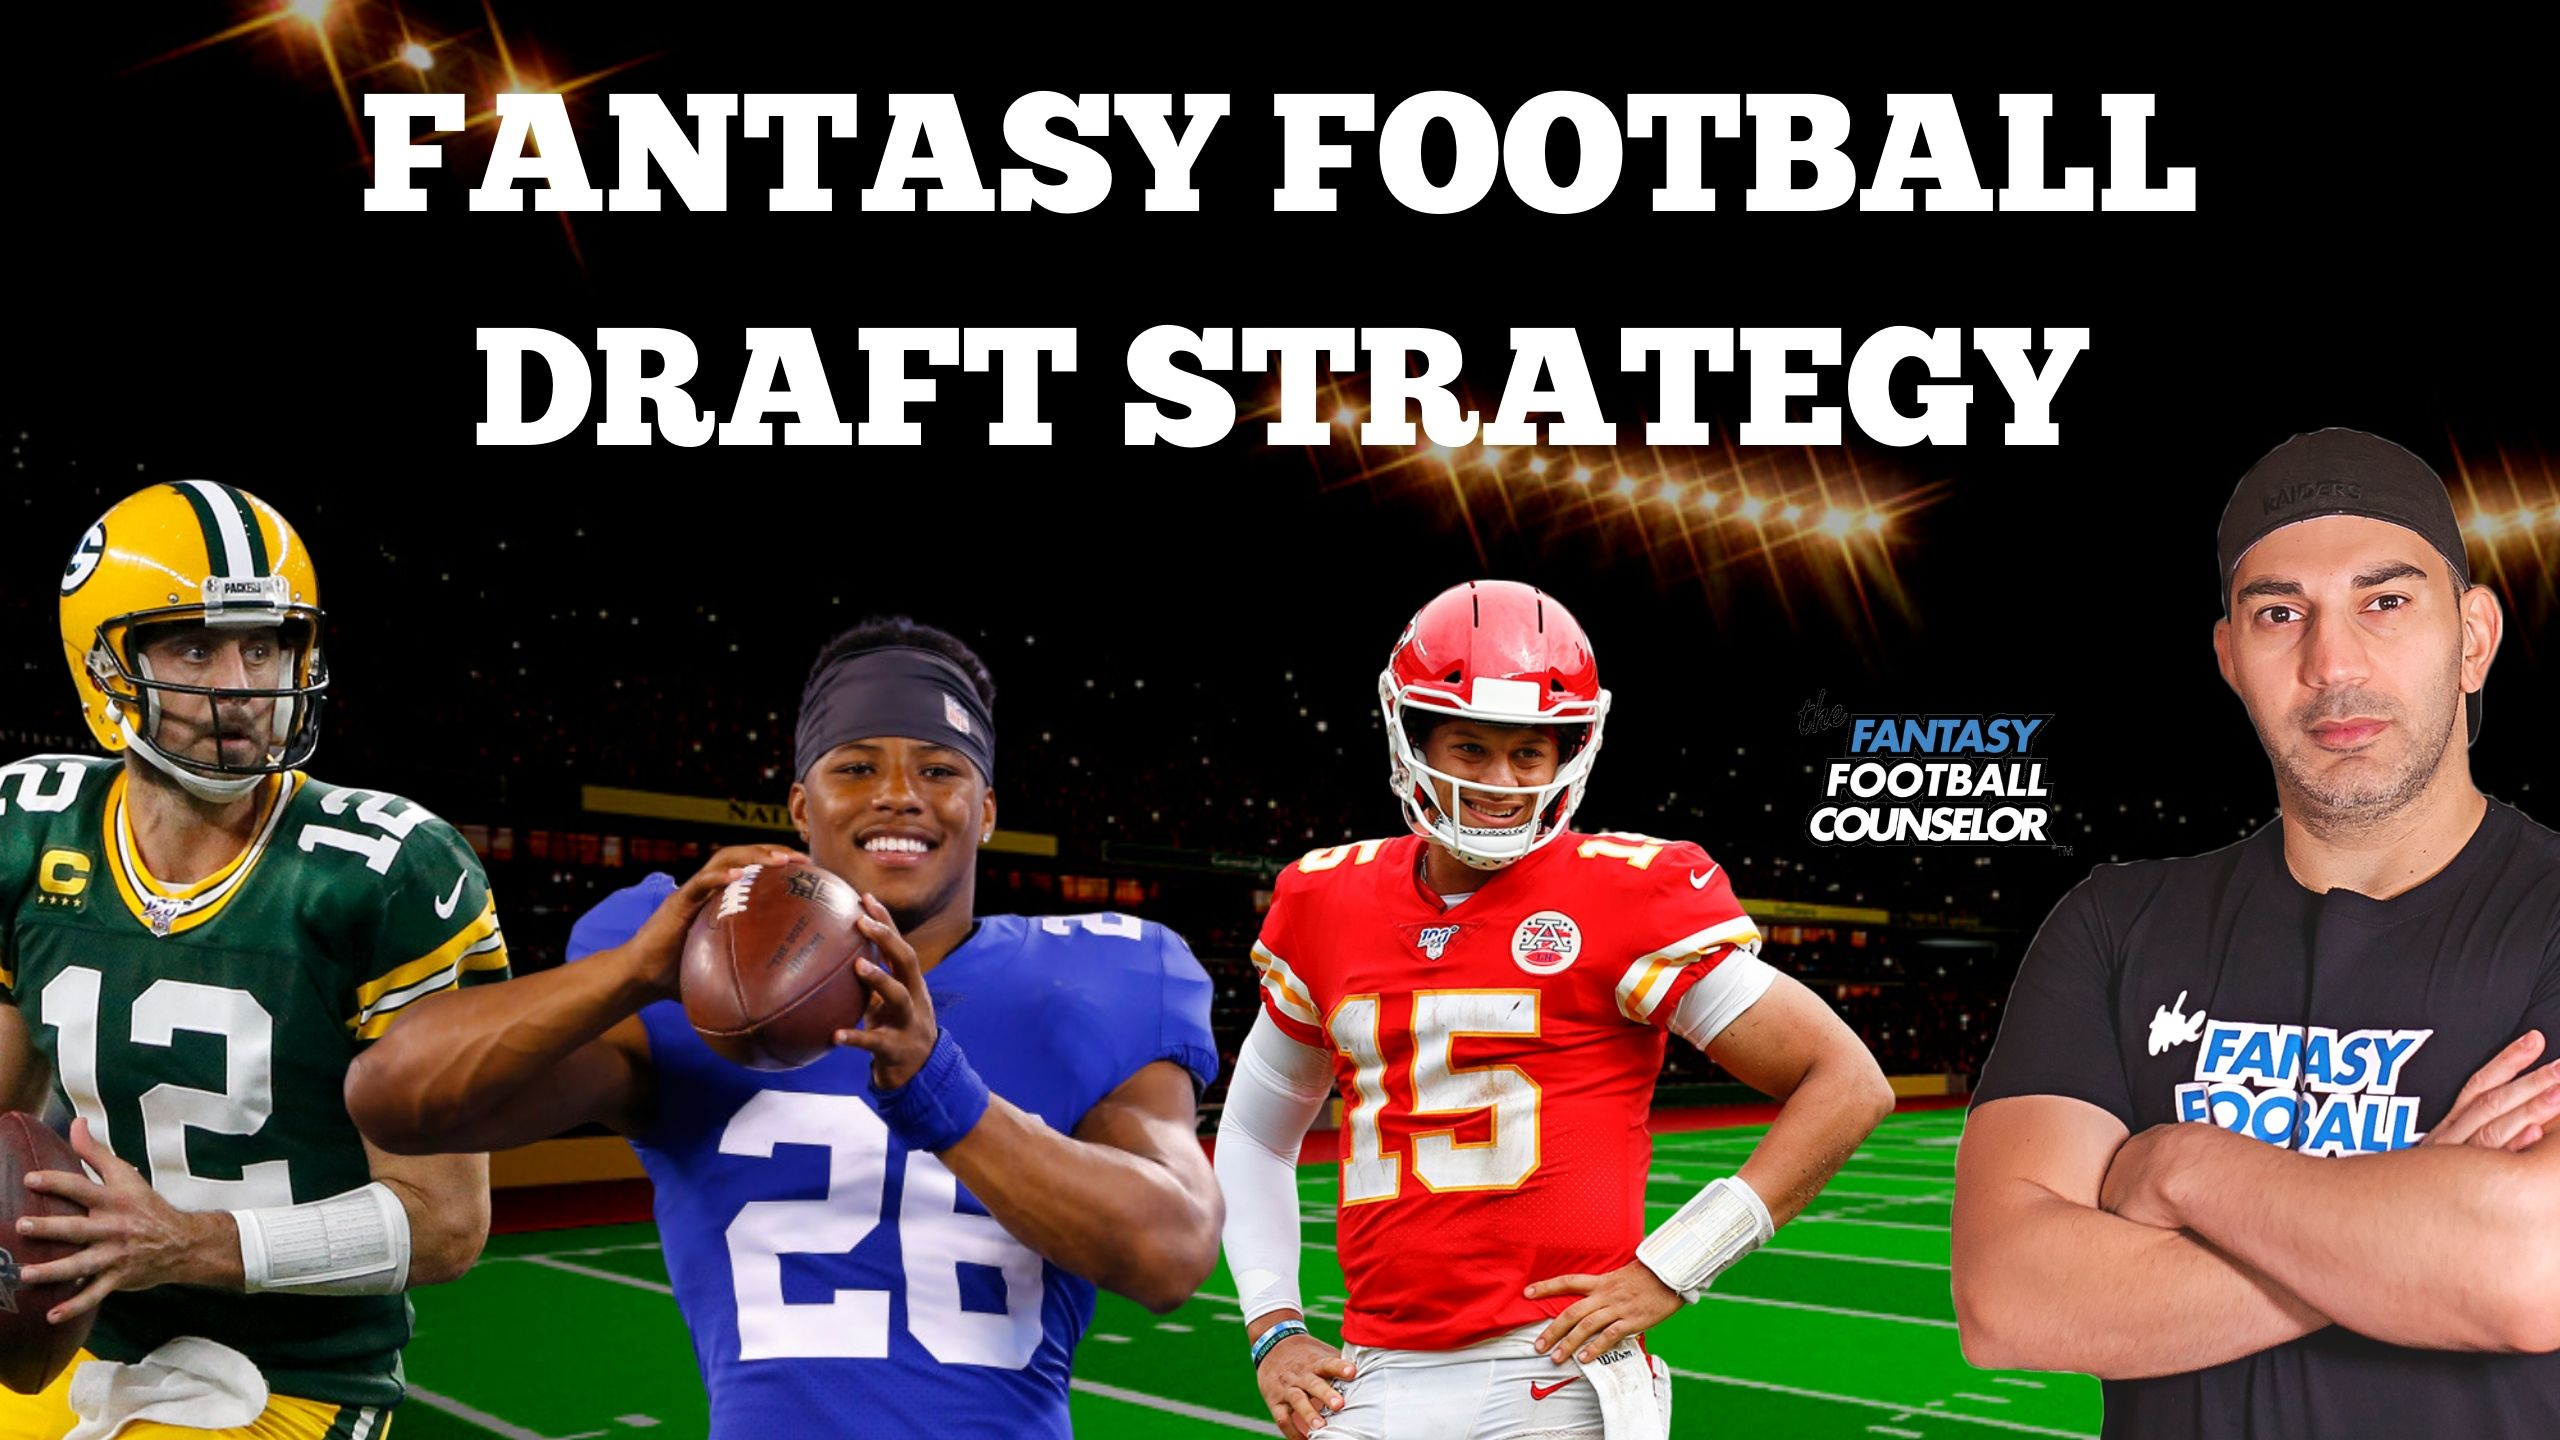 Fantasy Football Draft Strategy